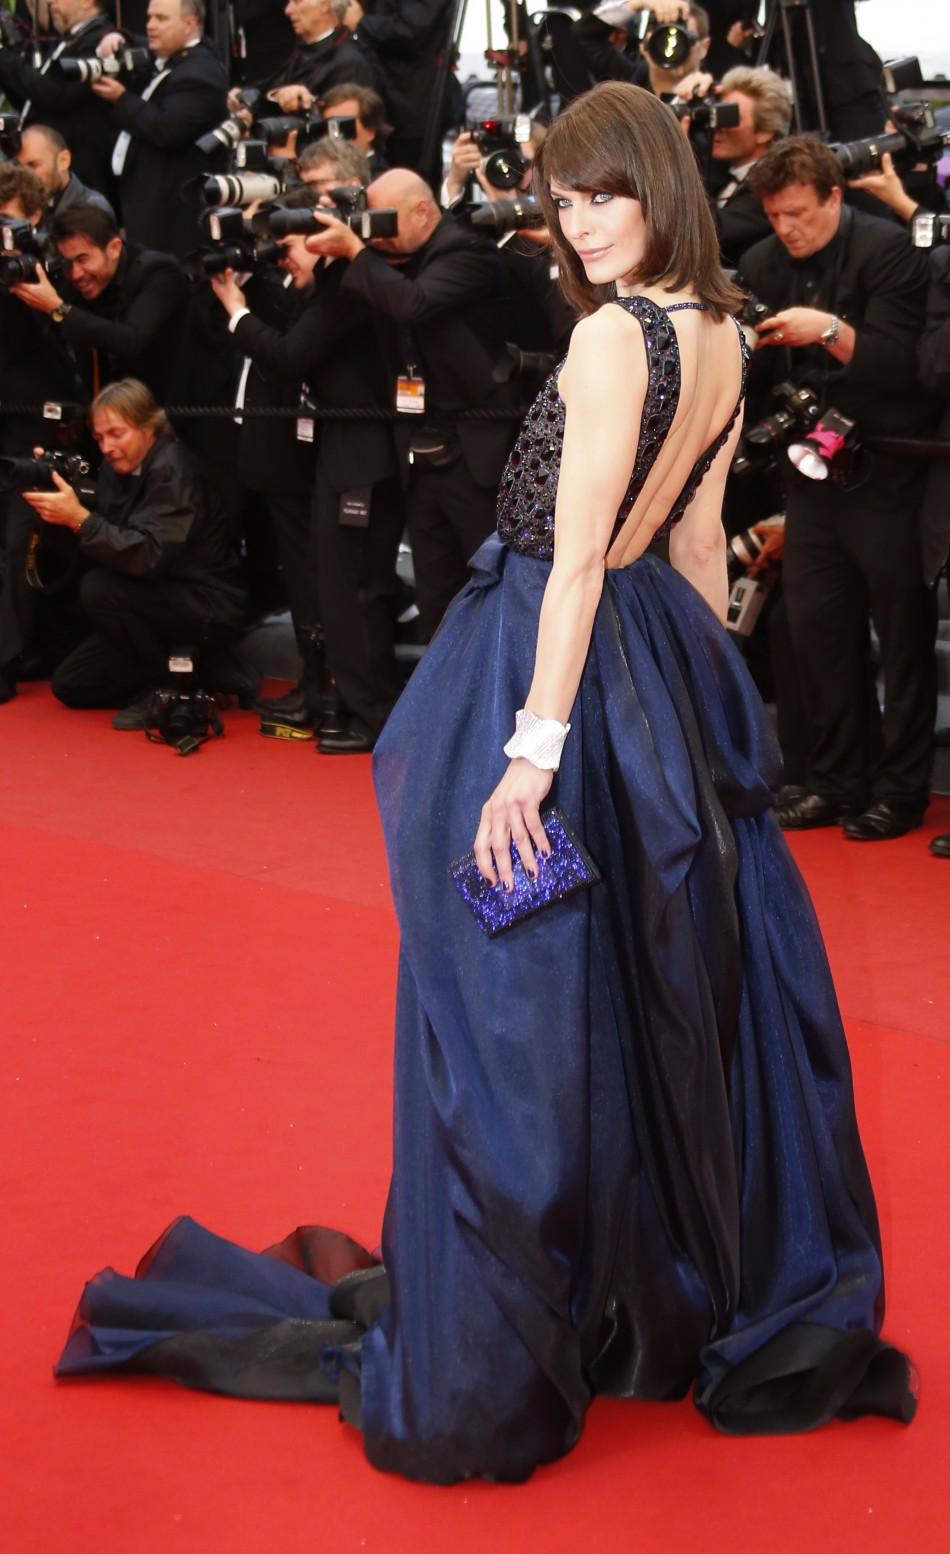 Actress Milla Jovovich poses on the red carpet as she arrives for the screening of the film All is Lost during the 66th Cannes Film Festival in Cannes May 22, 2013.